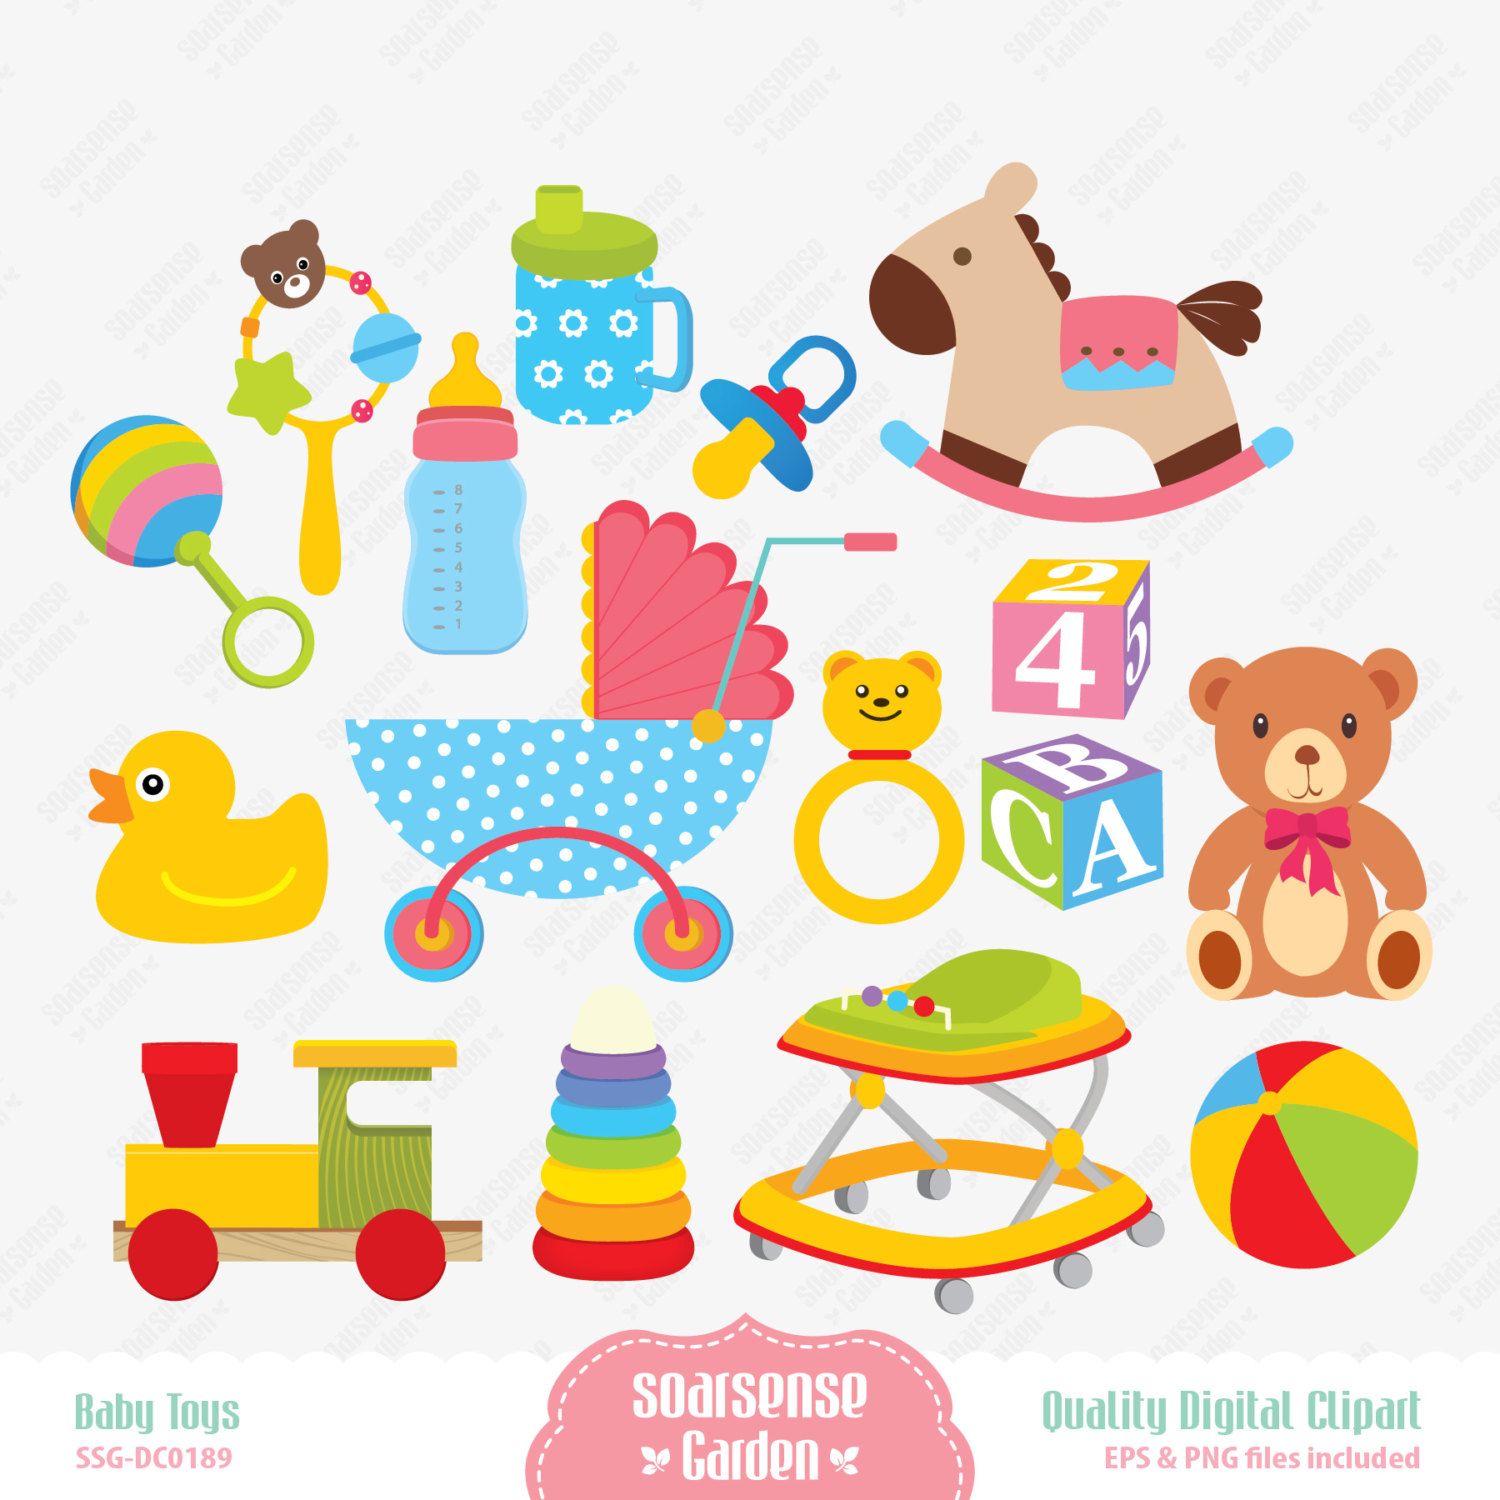 Baby toys pictures clipart banner freeuse library 91+ Baby Toys Clipart | ClipartLook banner freeuse library